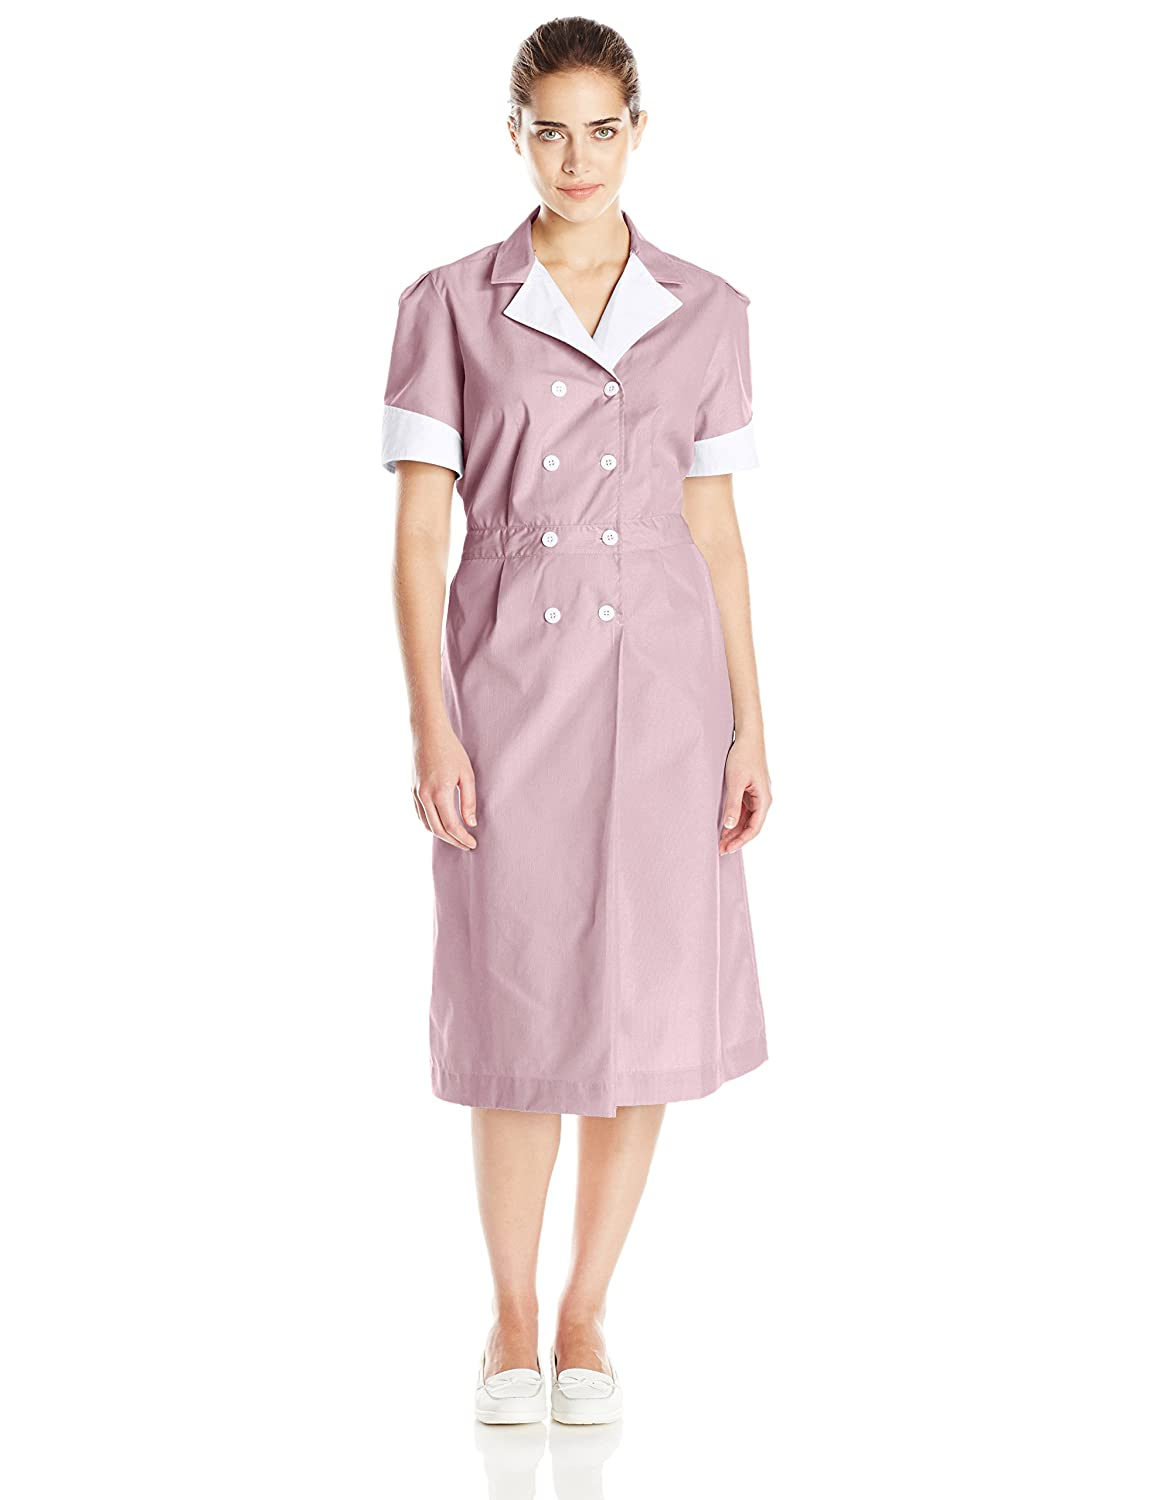 Vintage Shirtwaist Dress History Red Kap Womens Lapel Dress $71.59 AT vintagedancer.com